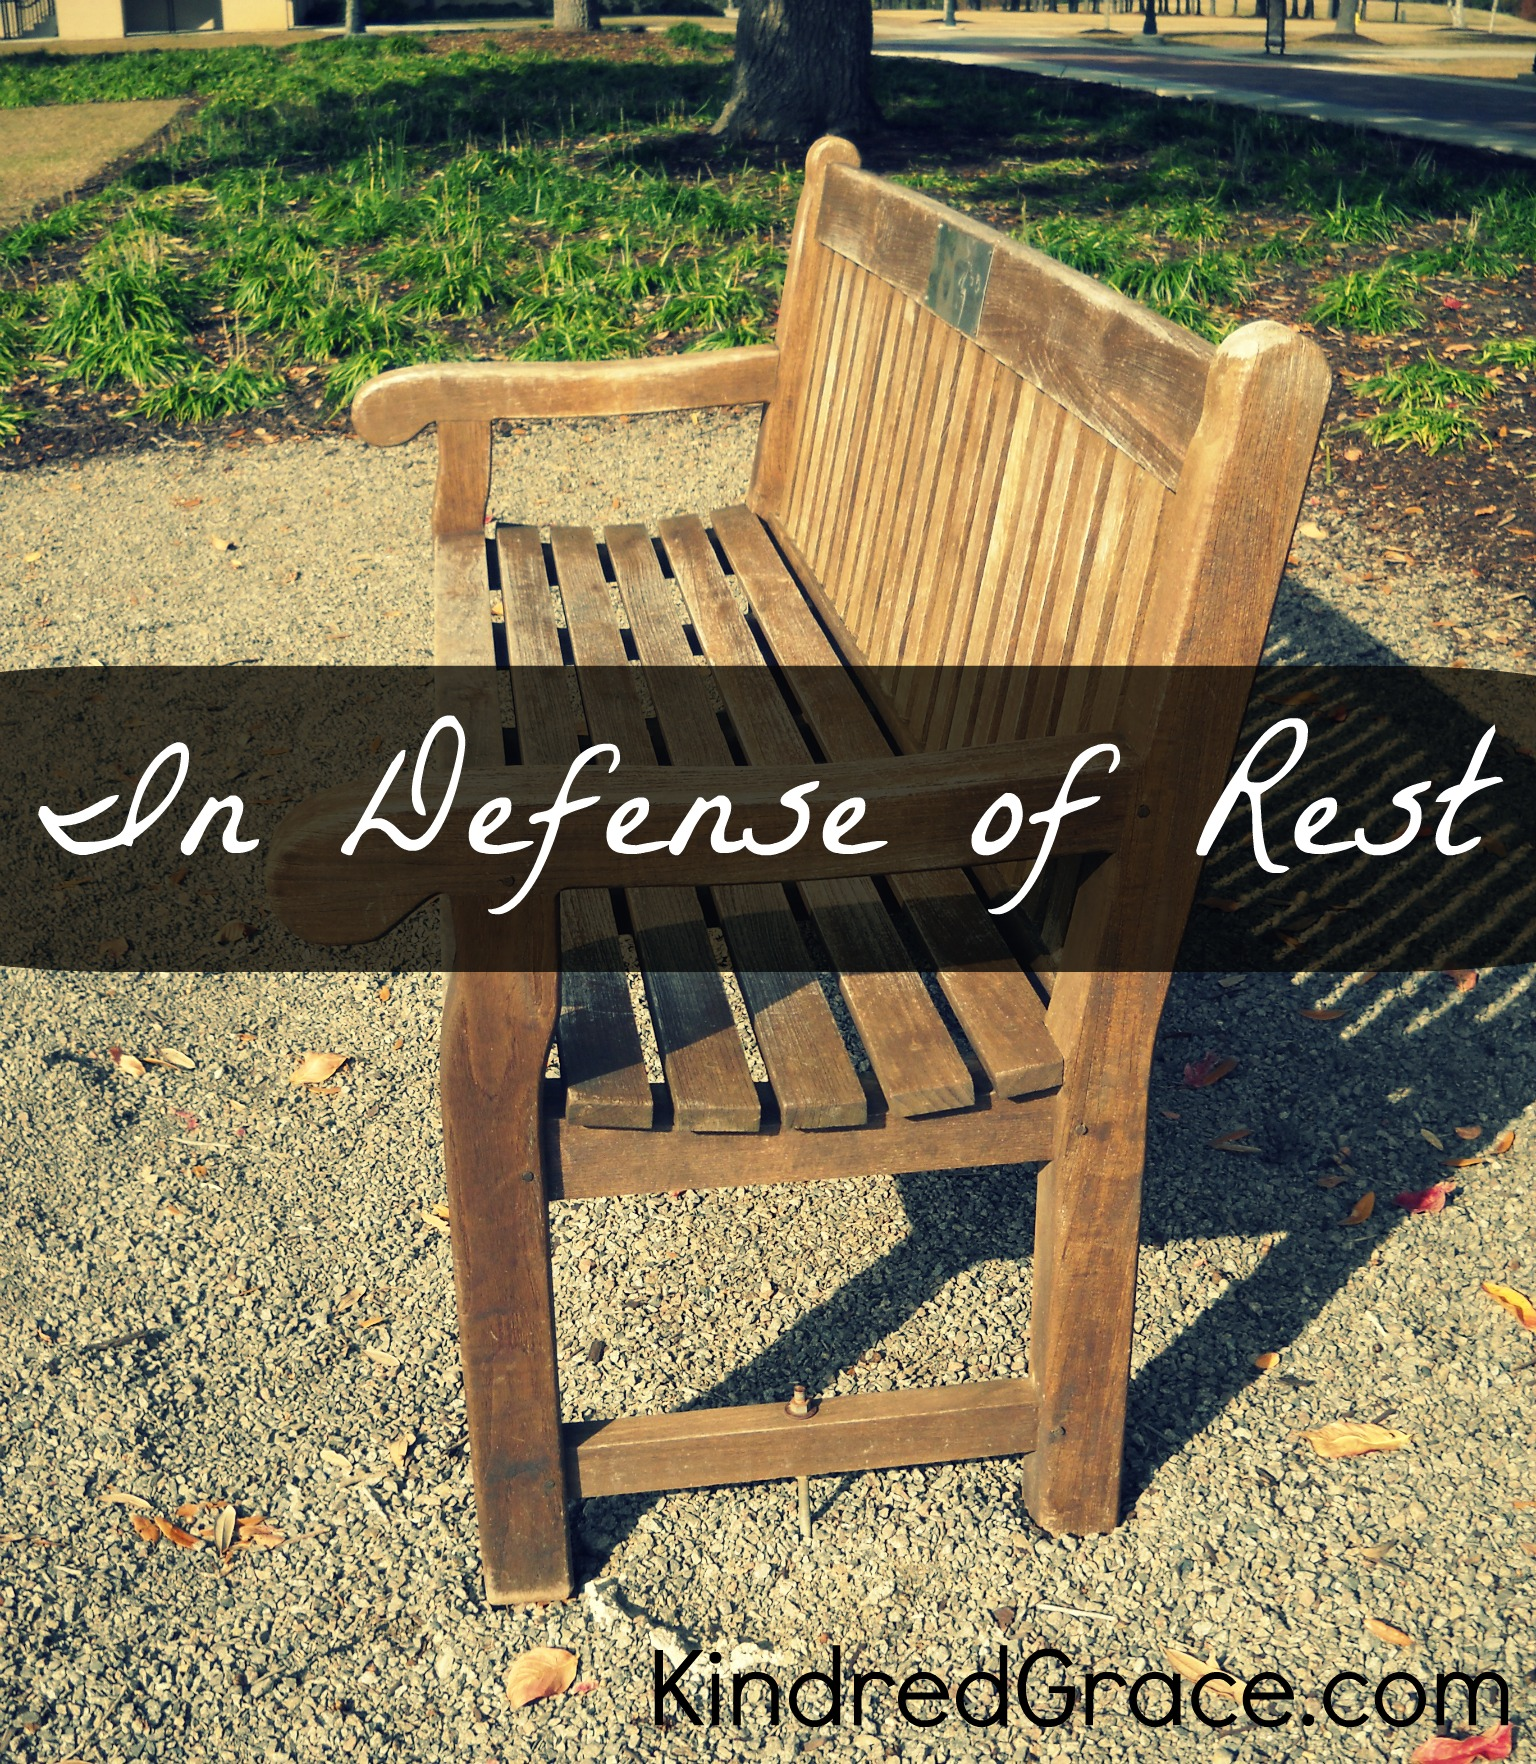 In Defense of Rest